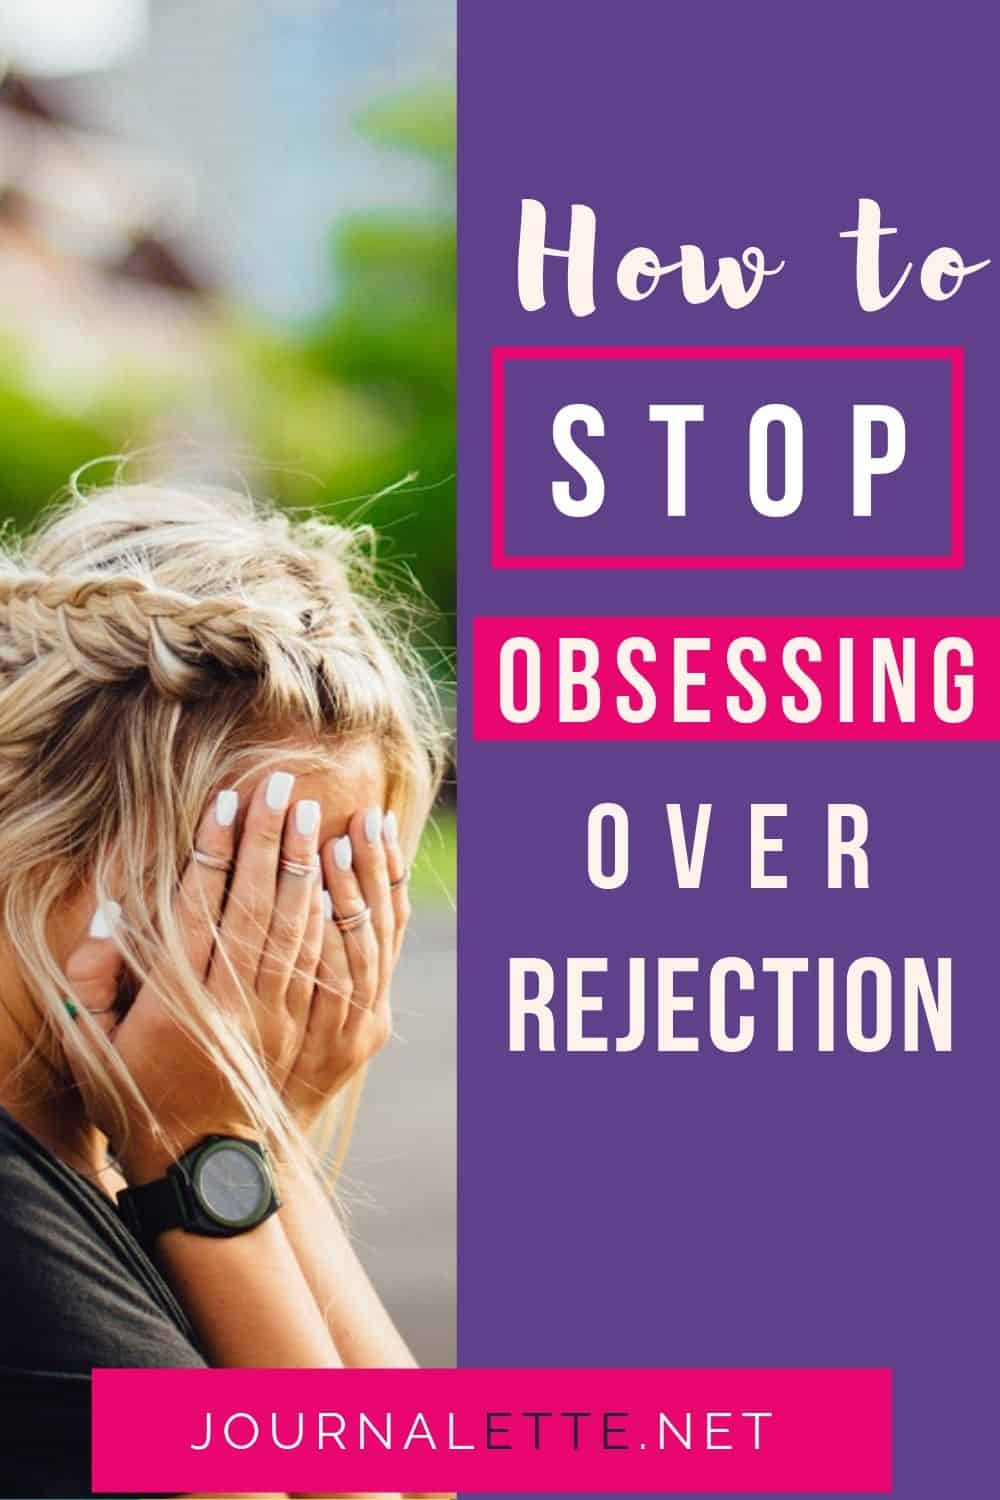 image of person head in hands with text overlay how to stop obsessing over rejection